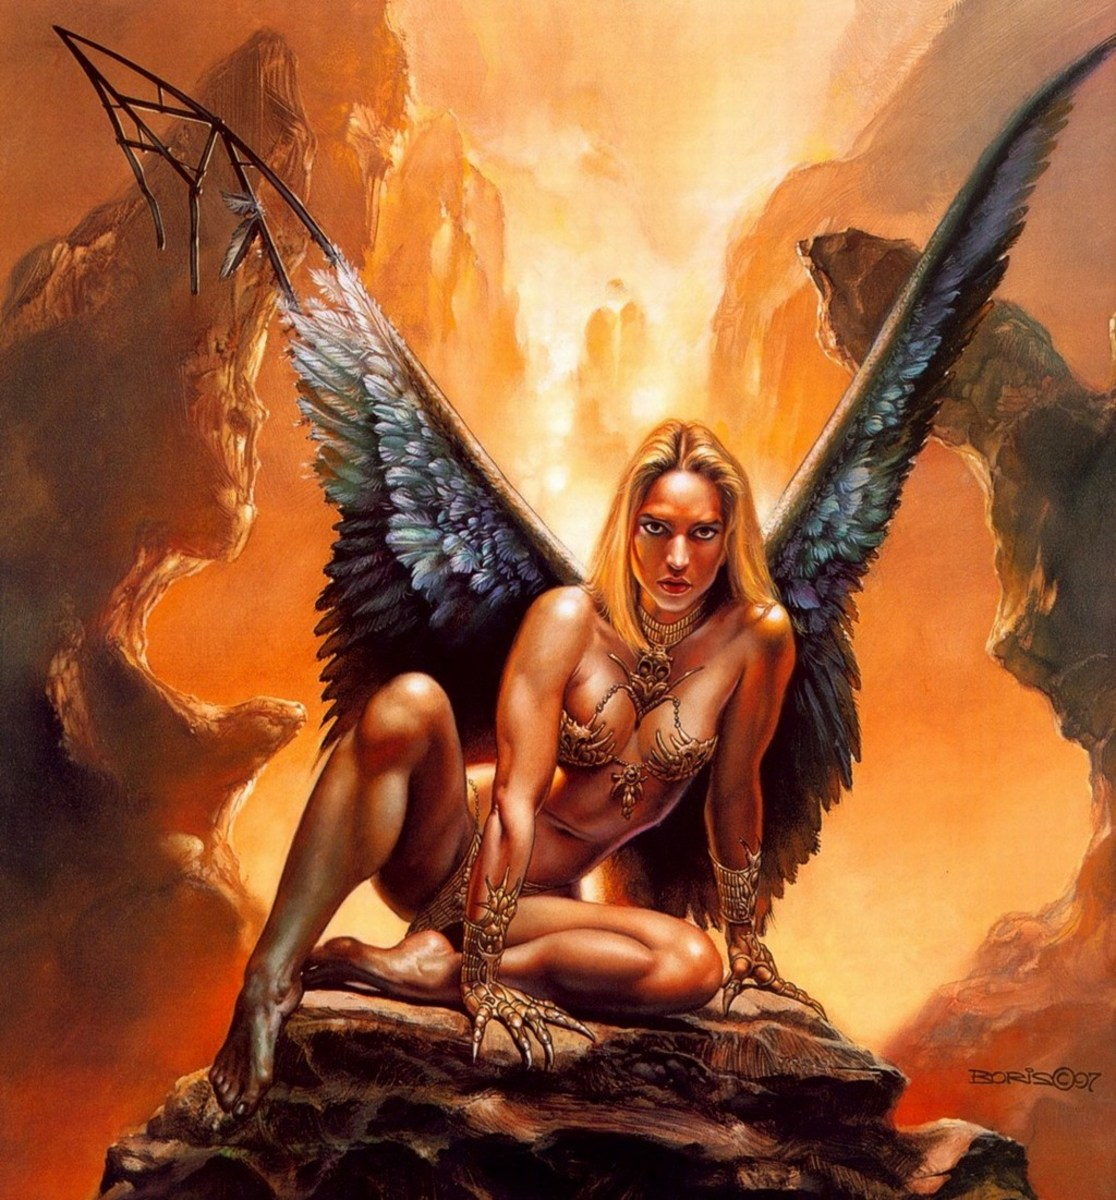 Fawal - art by Boris Vallejo